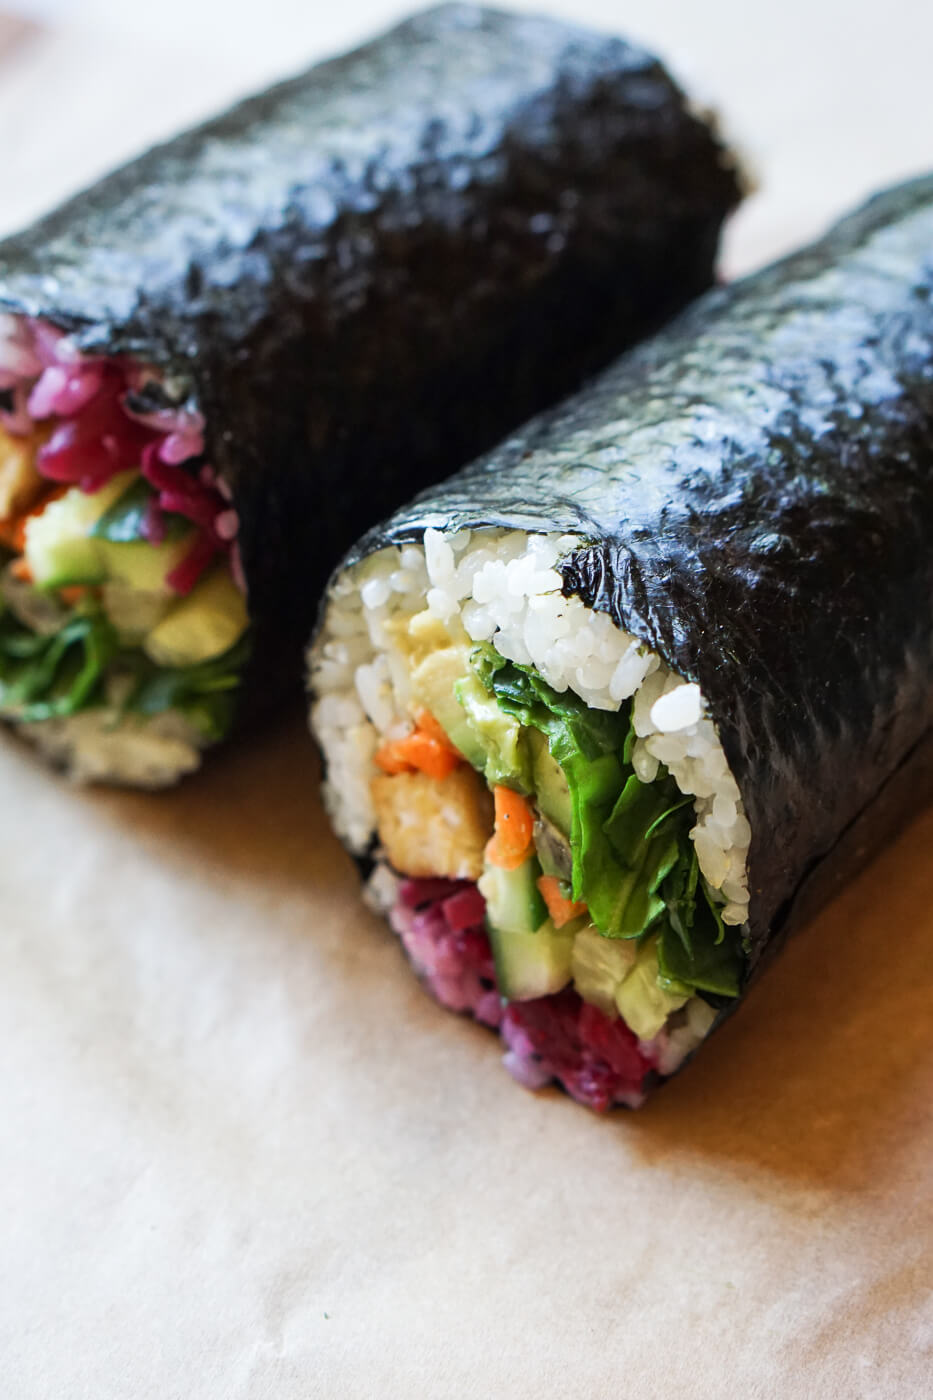 A close up photo of a vegan sushi burrito filled with spinach, avocado, cucumber, carrots and tempeh.